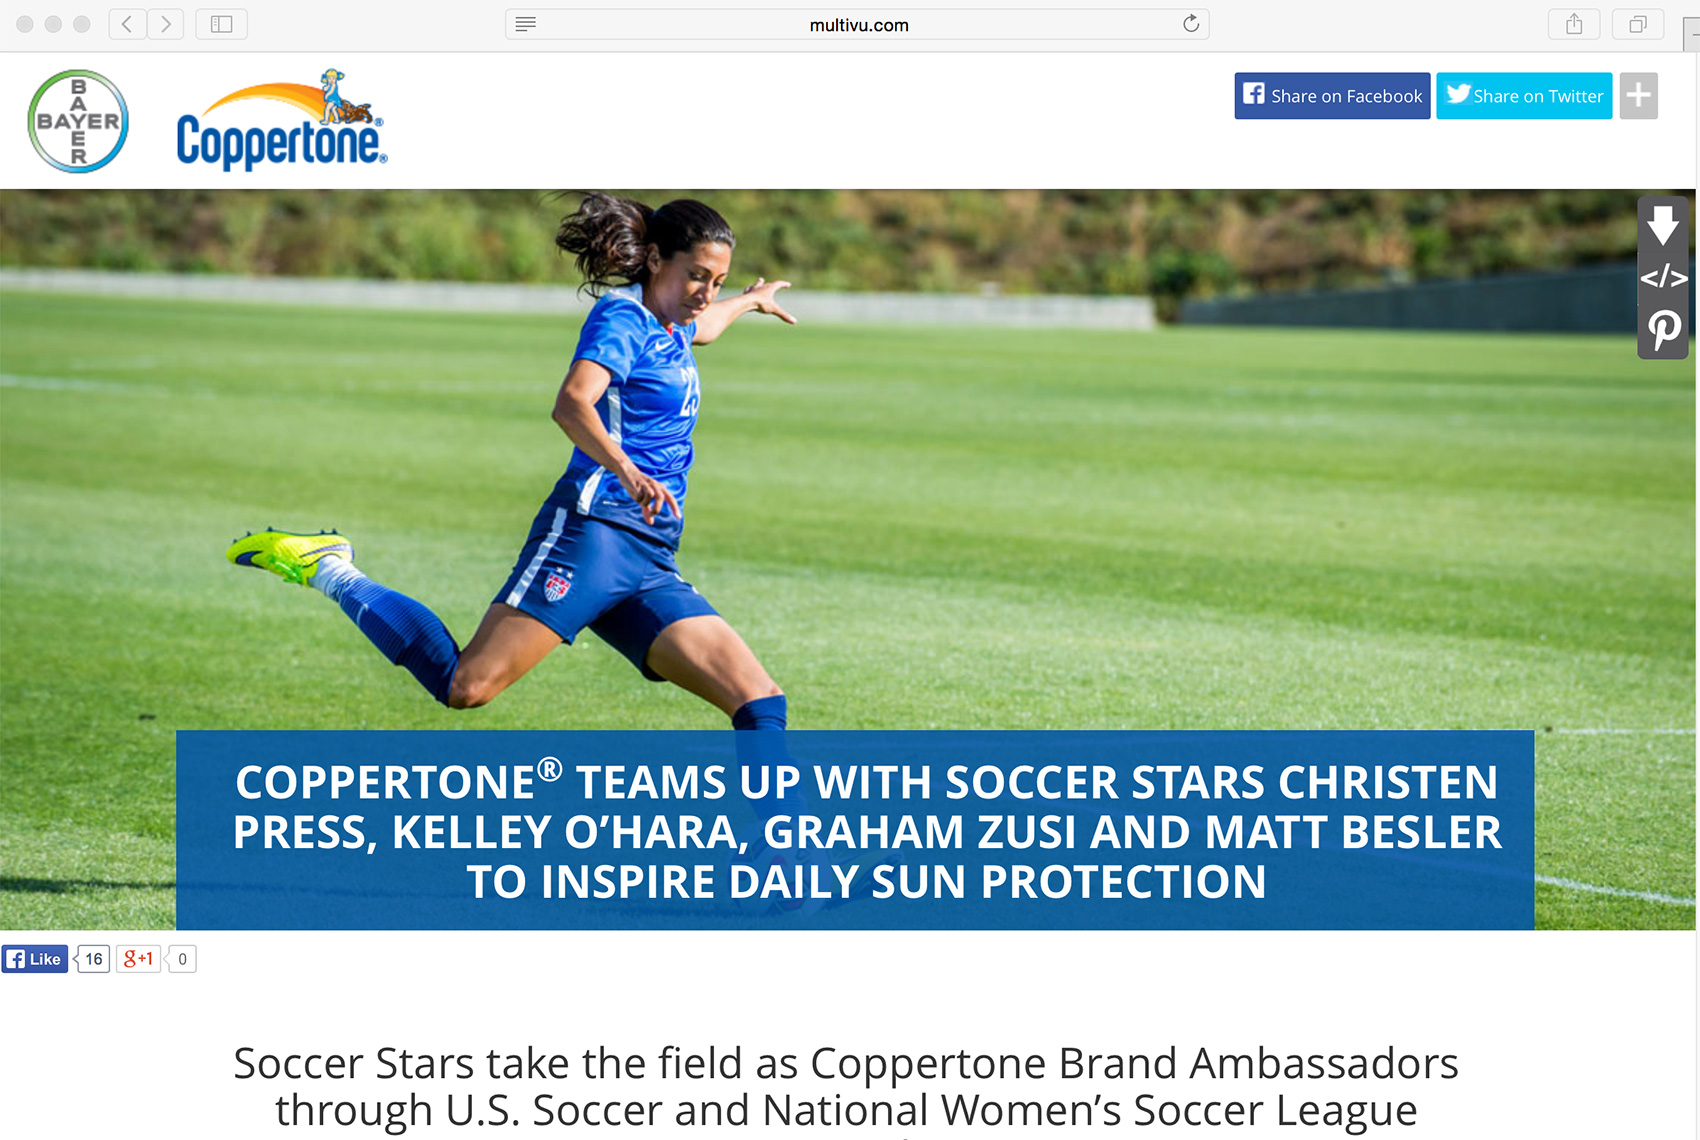 christenpress_Web